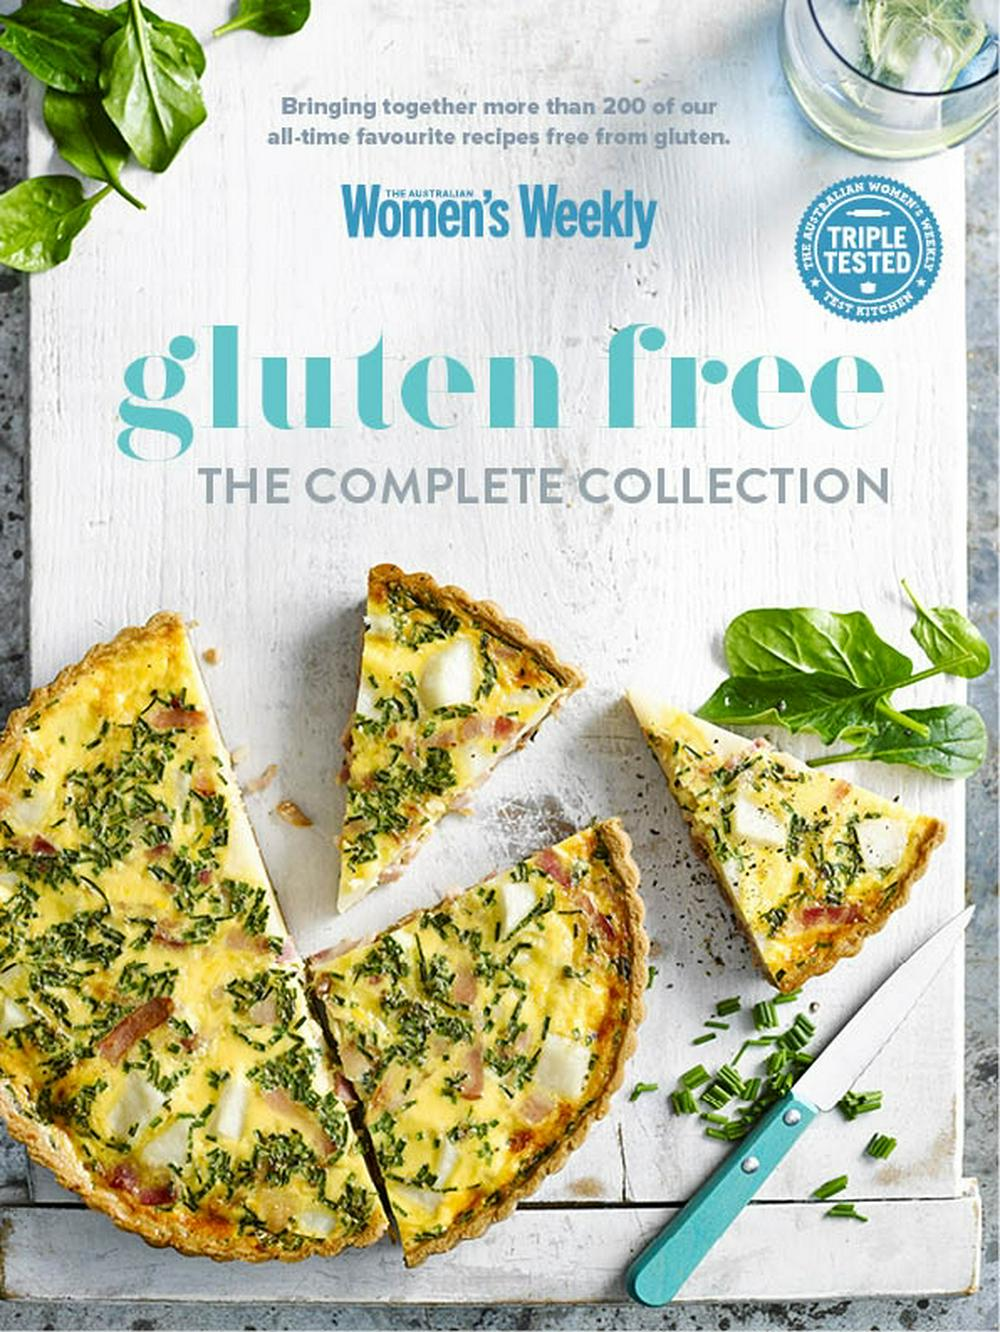 Gluten-free: The Complete Collection (The Australian Women's Weekly)